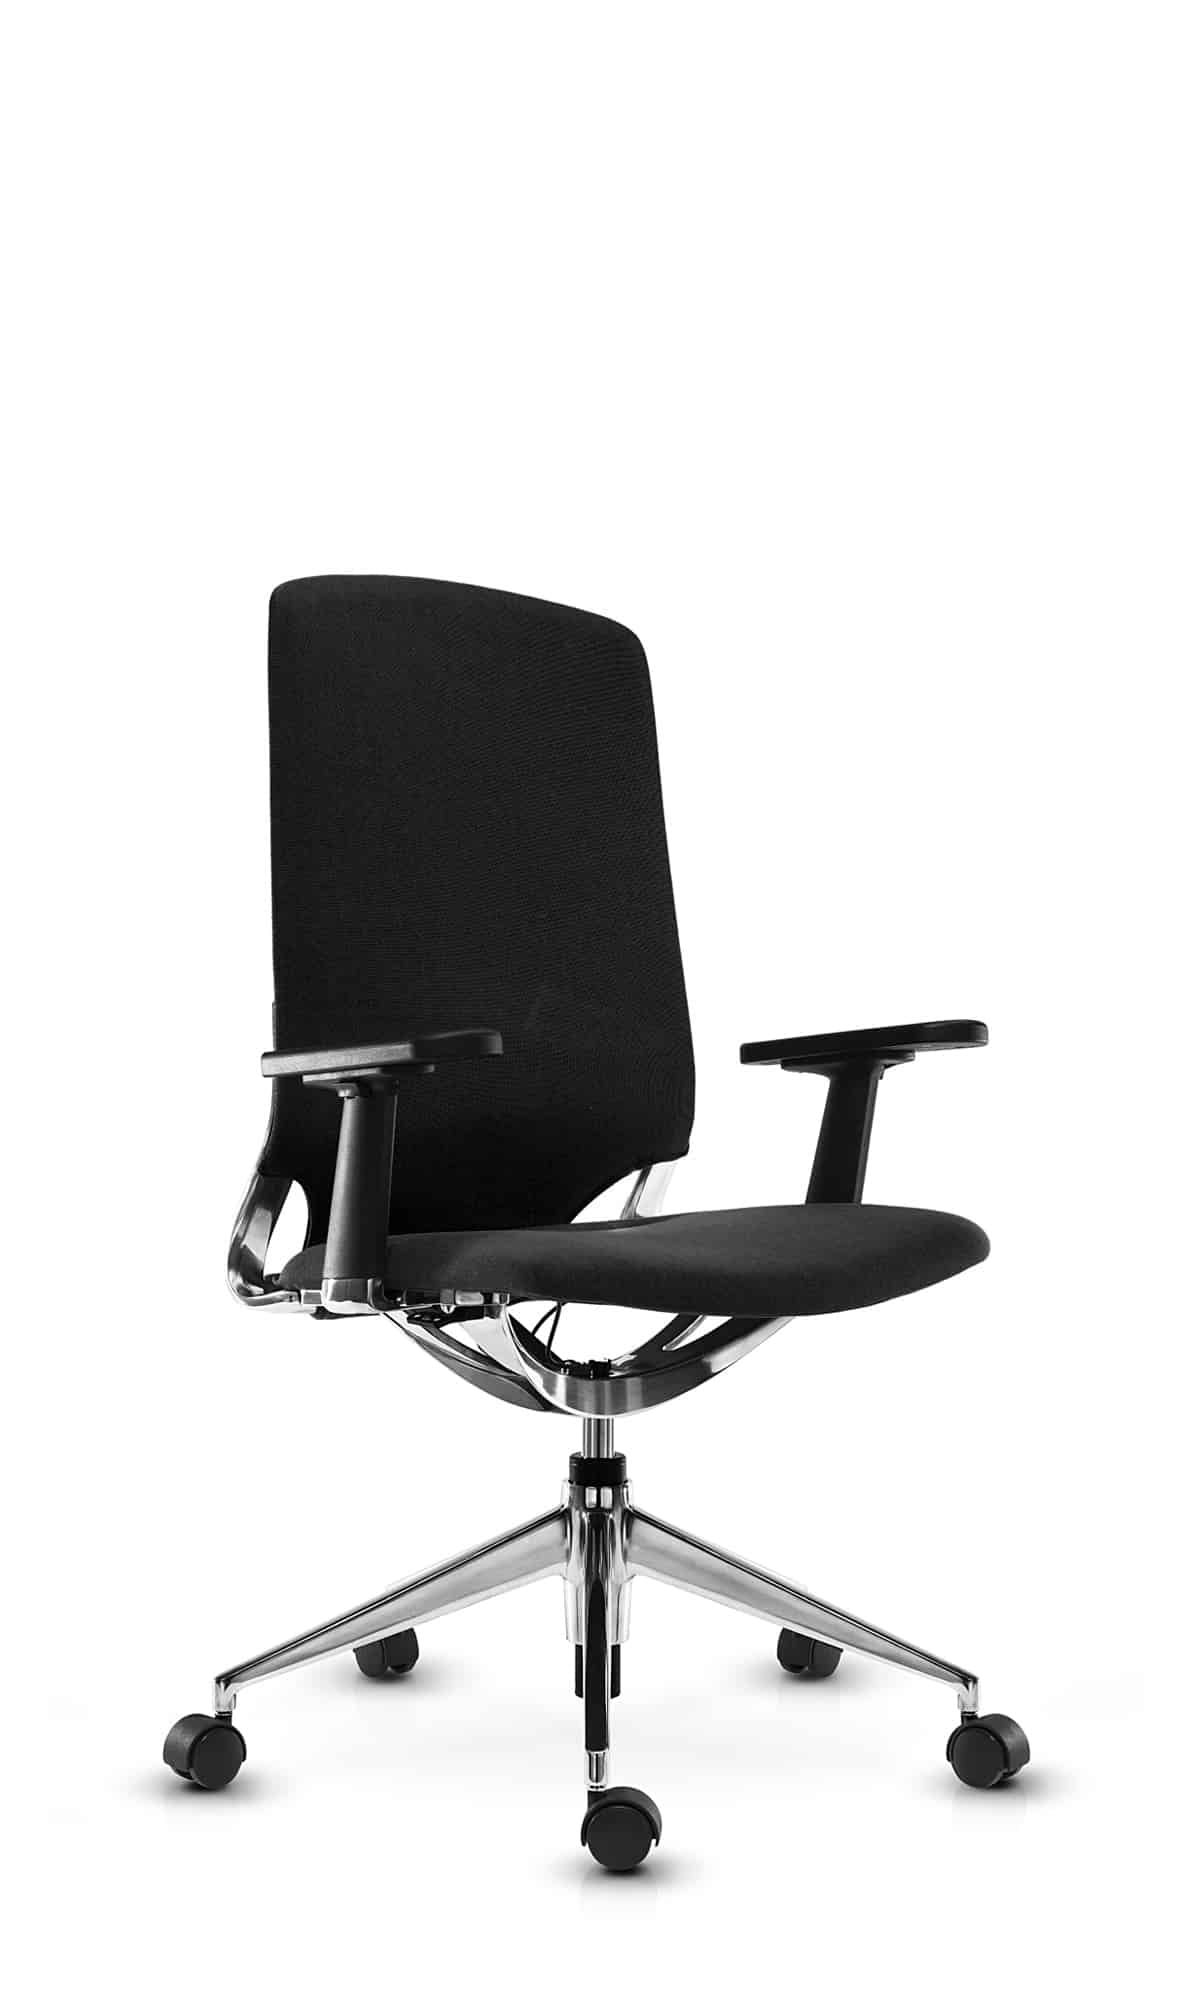 Contessa office chair black with shorter backrest